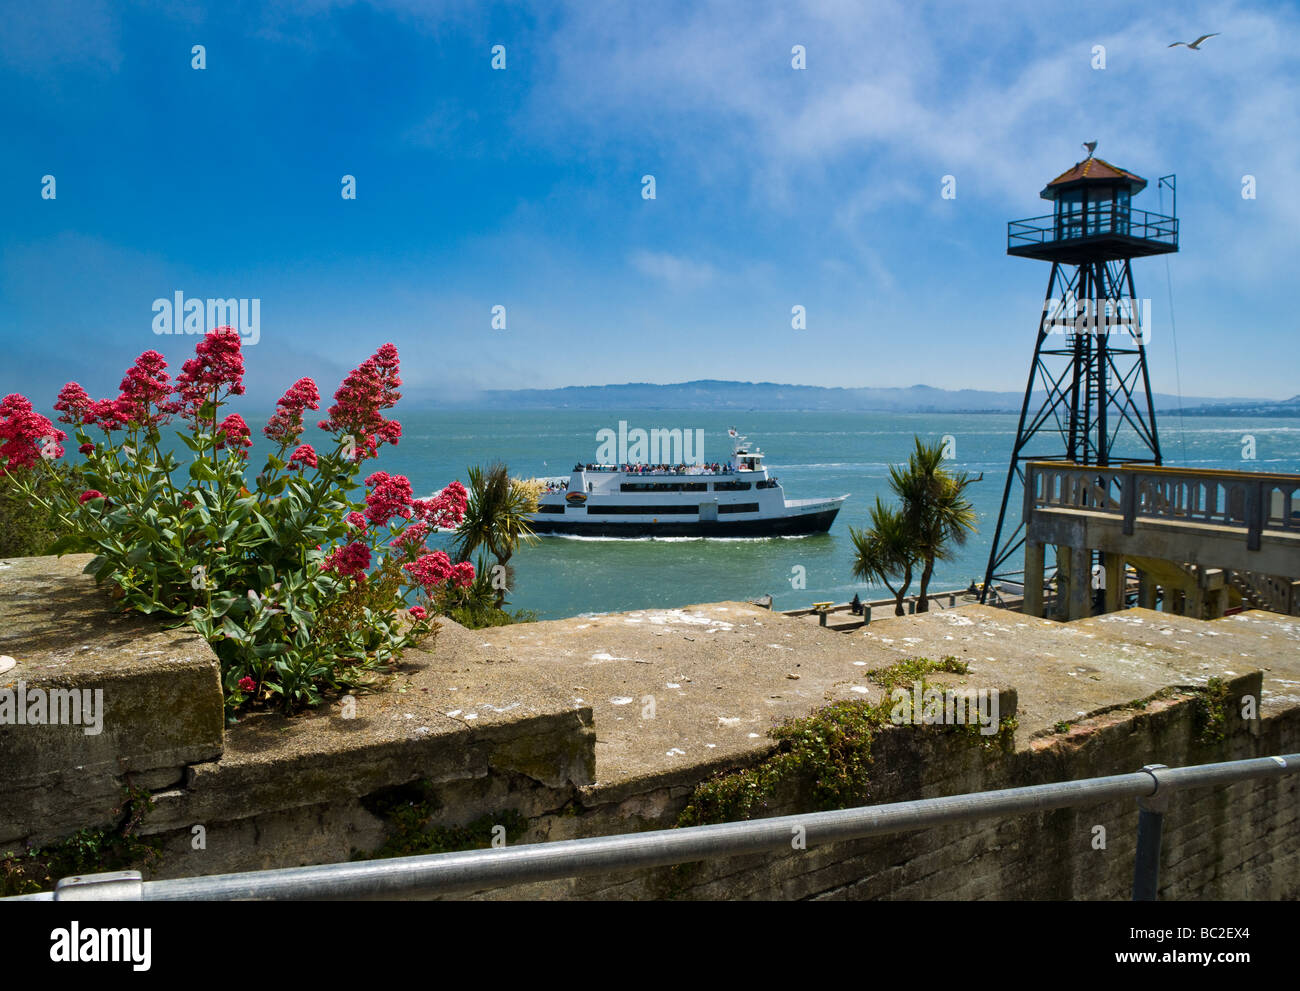 A tour boat passes behind a guard tower as it delivers visitors to Alcatraz. - Stock Image